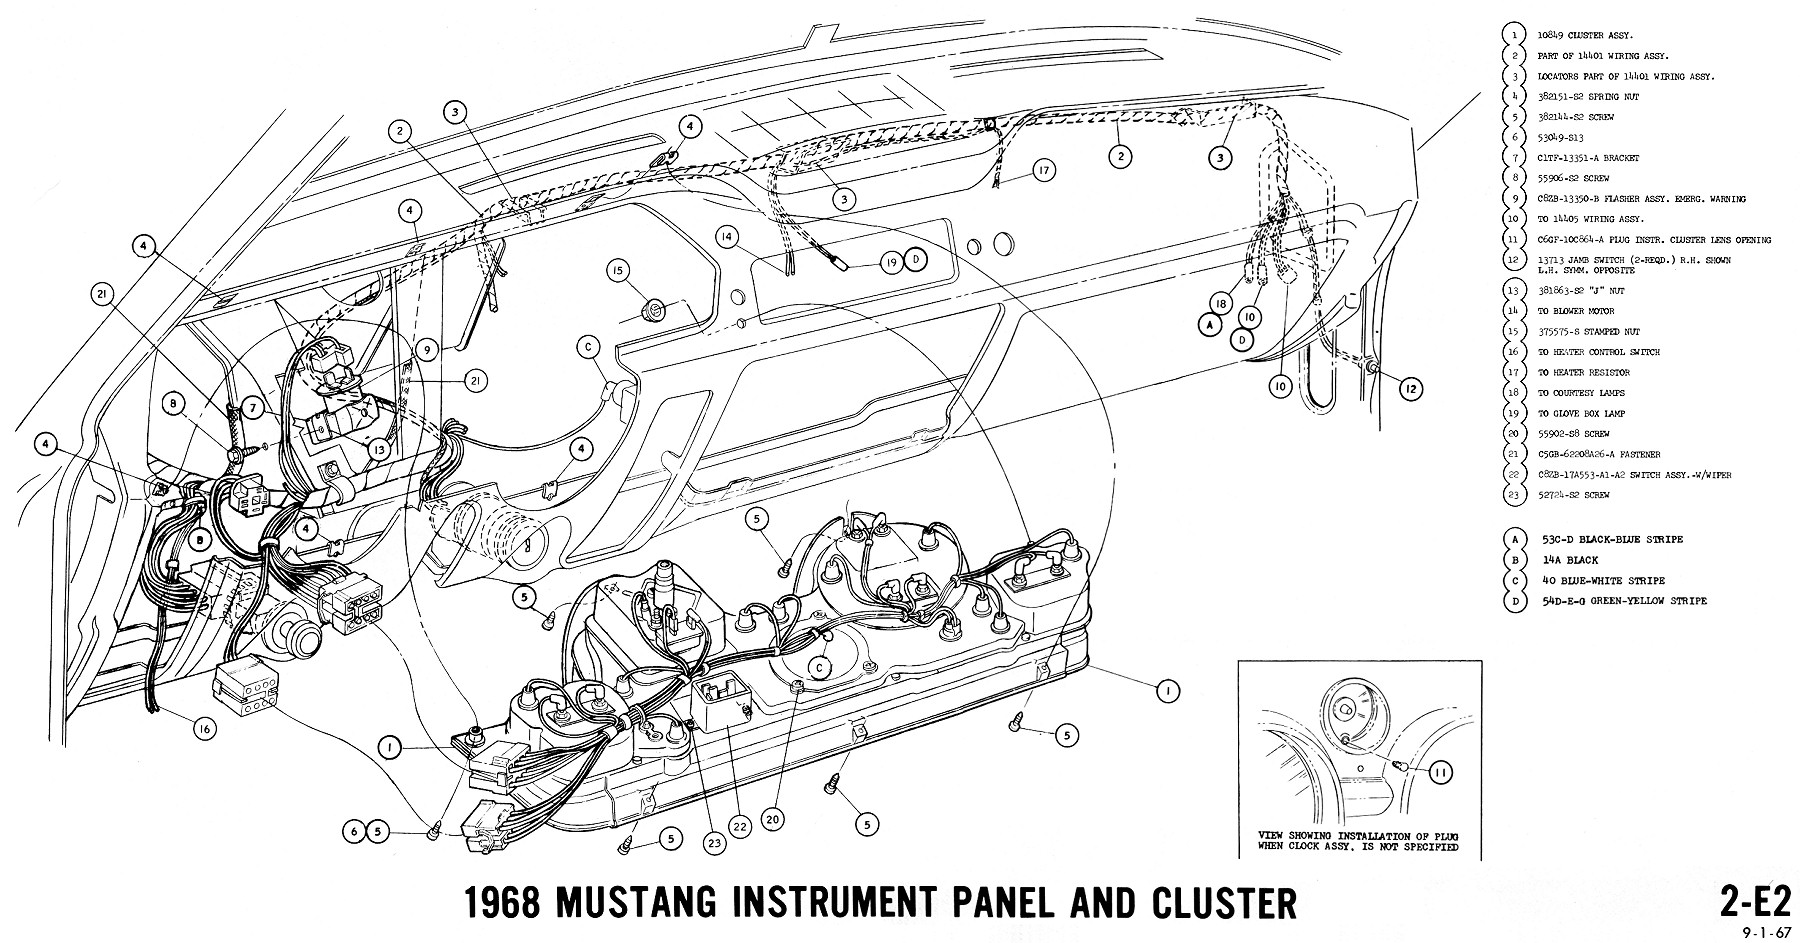 1968 Mustang Wiring Diagram Vacuum Schematics in addition Watch in addition Troubleshoot Wiper Motor And Switch Your Automobile 422036 additionally Manuales Taller blogspot as well Watch. on 98 dodge ram wiring diagram